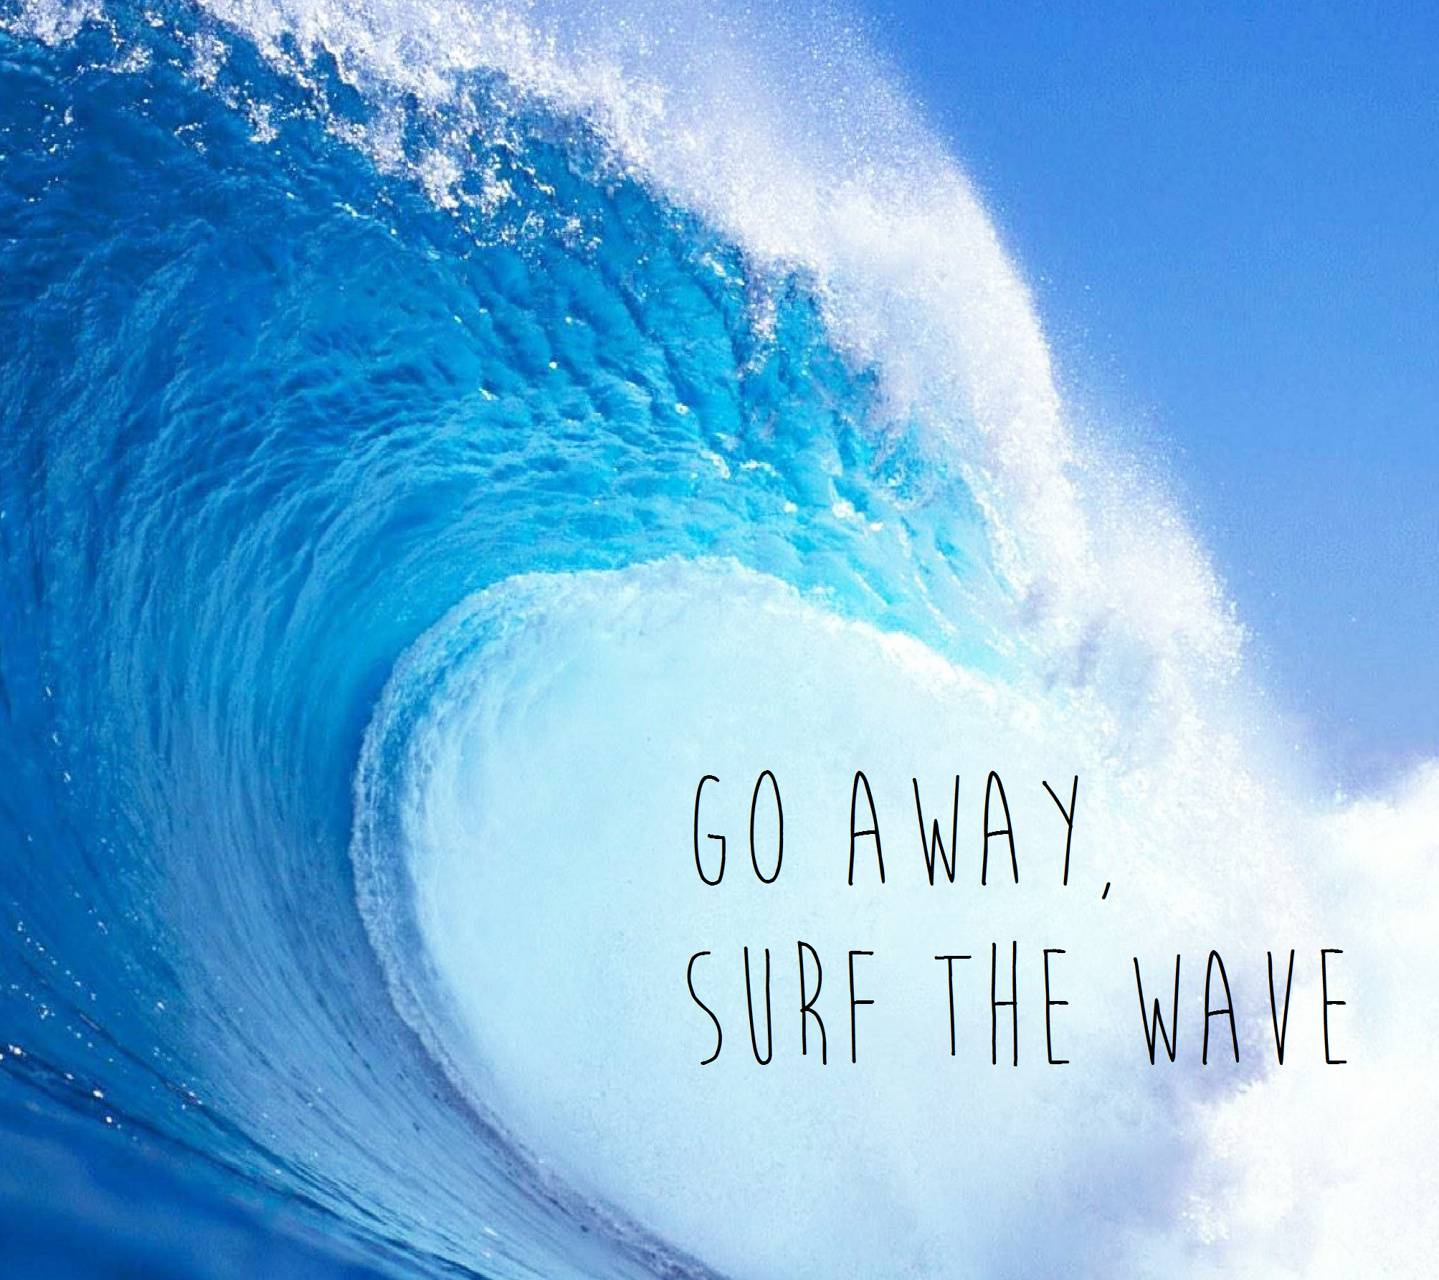 Go away surfthe wave